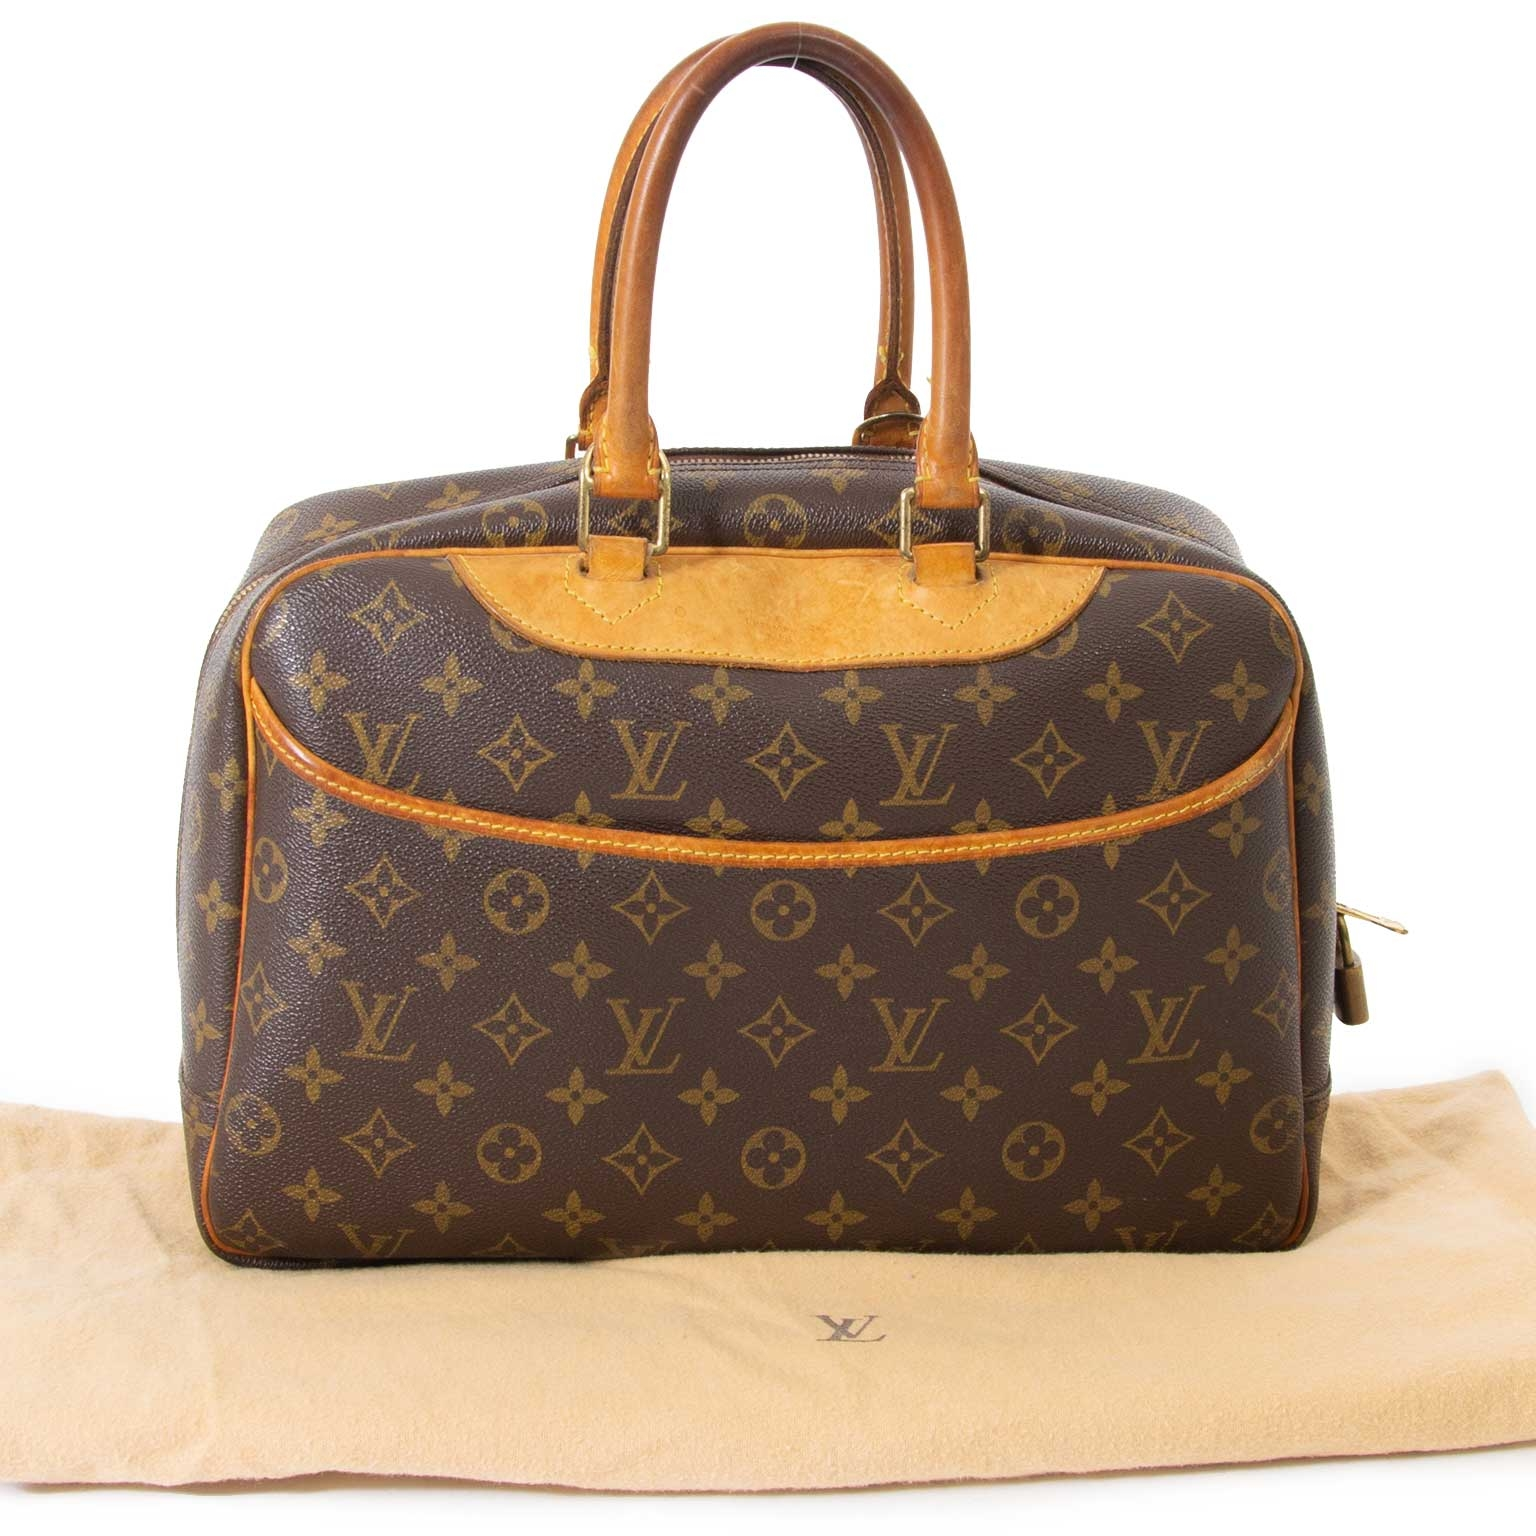 skip the waitinglist shop your designer bag for less online Louis Vuitton Monogram Deauville